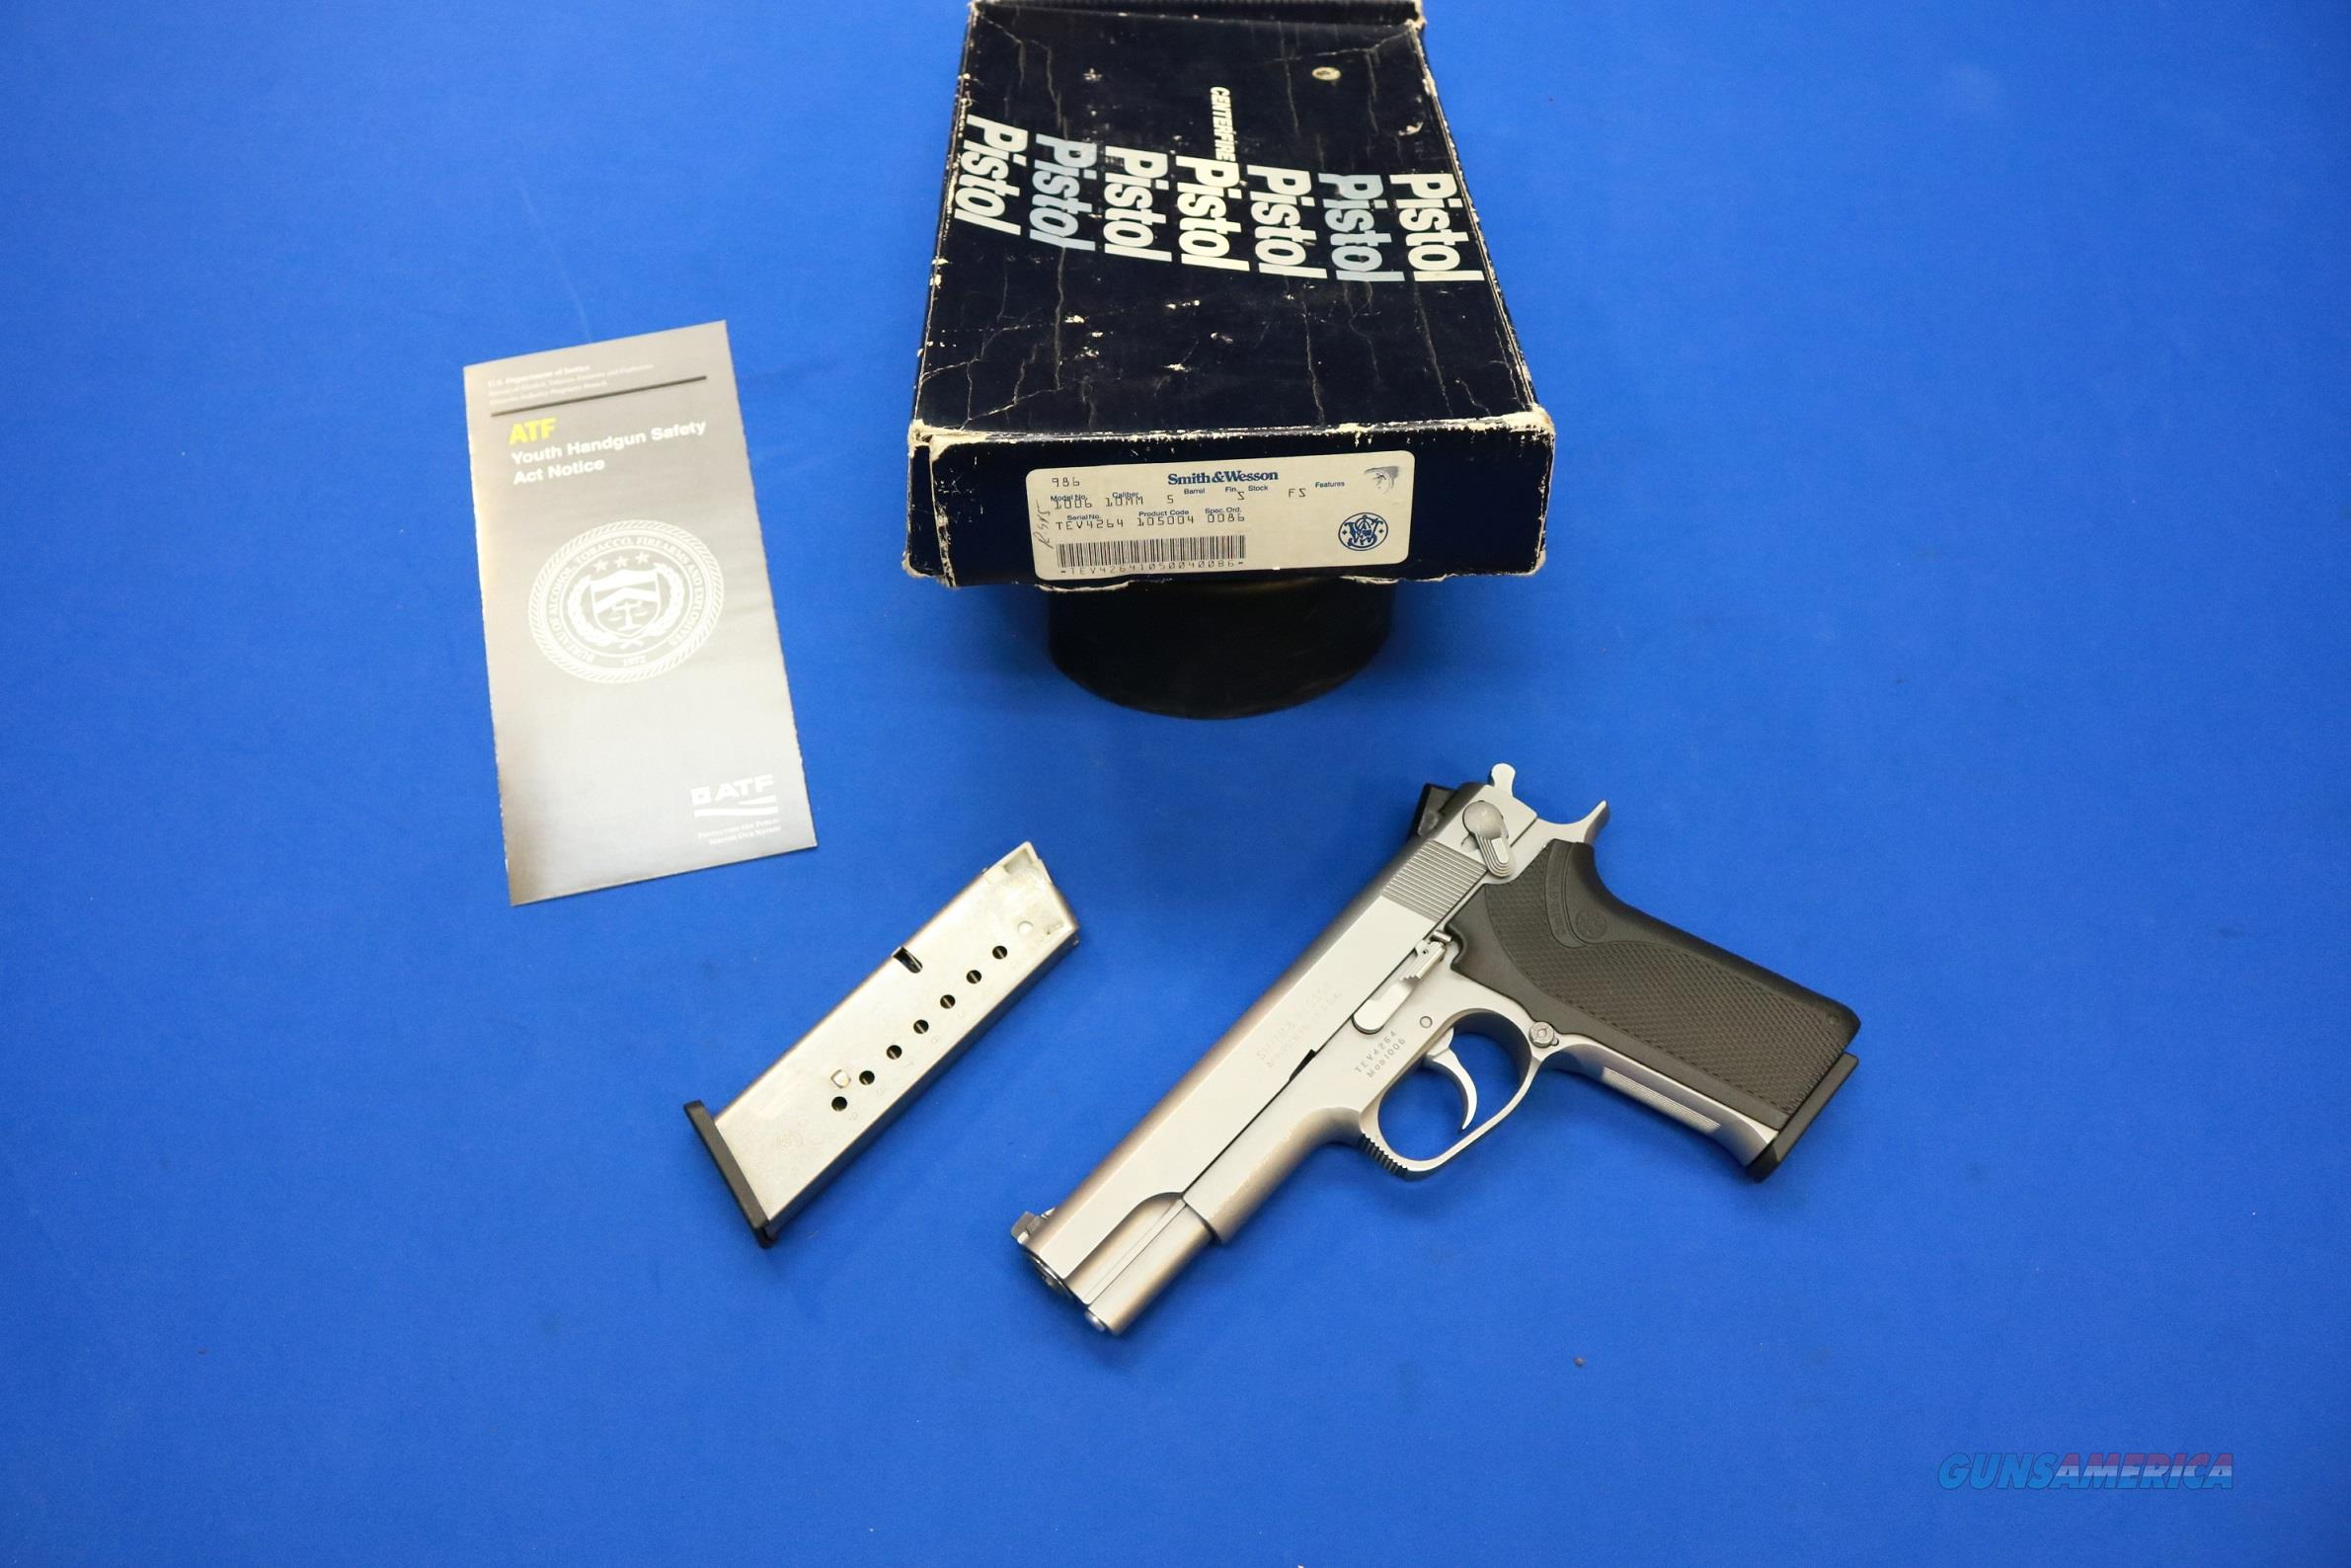 SMITH & WESSON 1006 STAINLESS 10mm w/BOX & 2 MAGS  Guns > Pistols > Smith & Wesson Pistols - Autos > Steel Frame